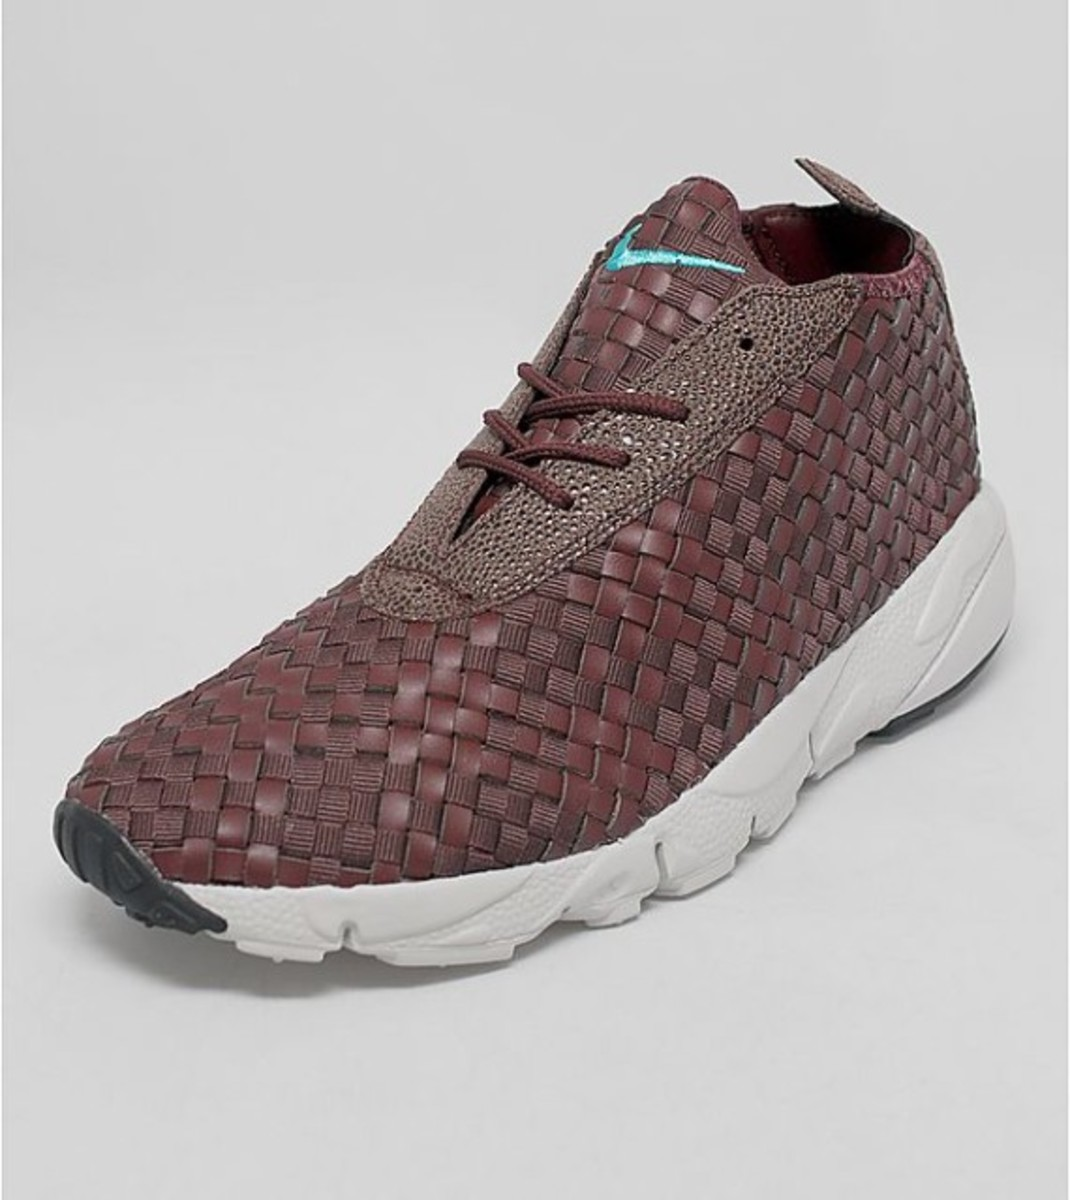 nike-air-footscape-woven-desert-chukka-brown-leather-01